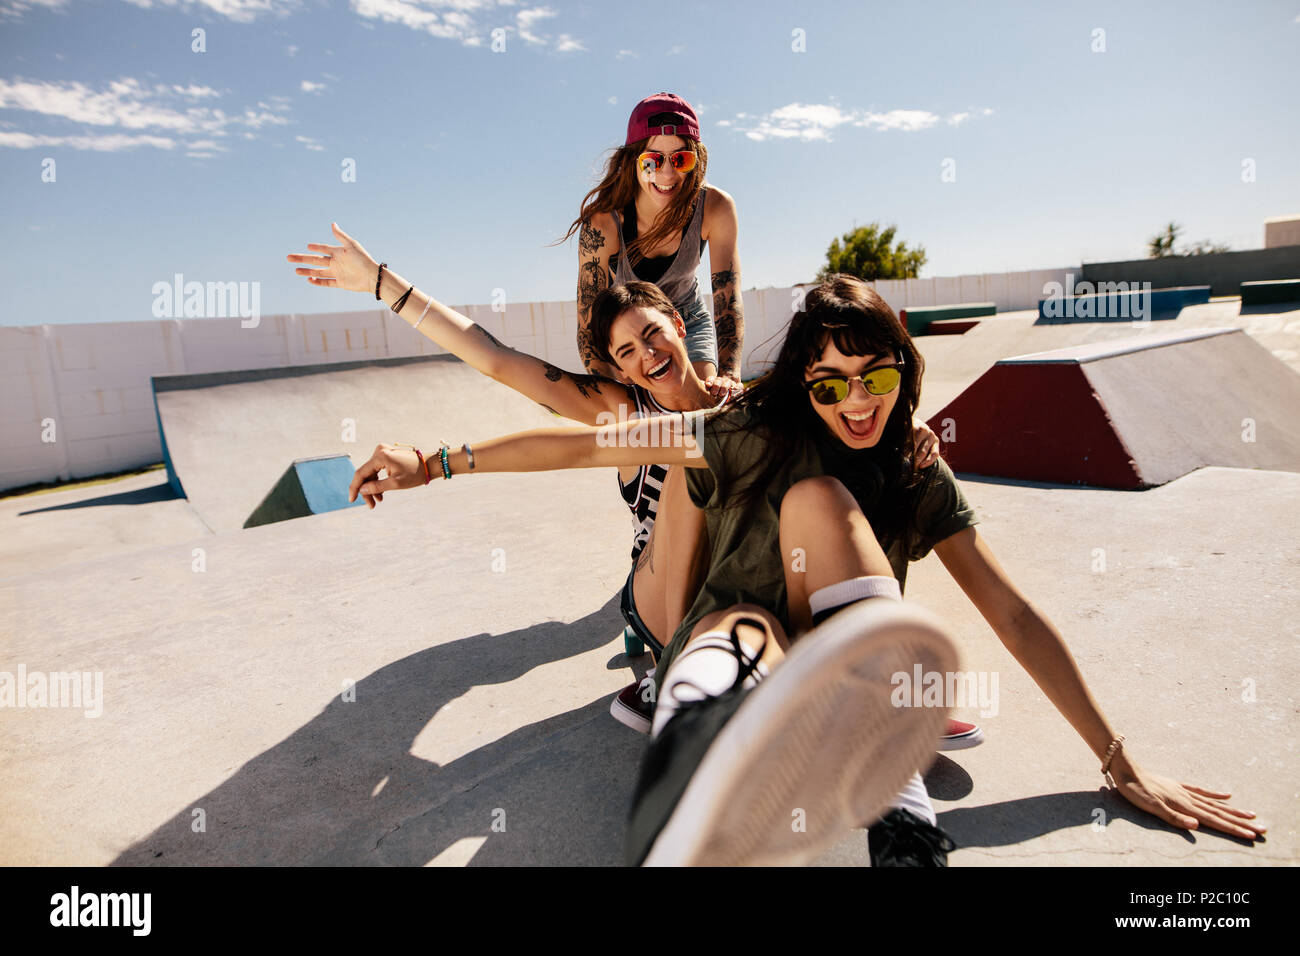 Three female friends playing with skateboard at the skate park. One woman pushing her friends from behind having fun and laughing. - Stock Image